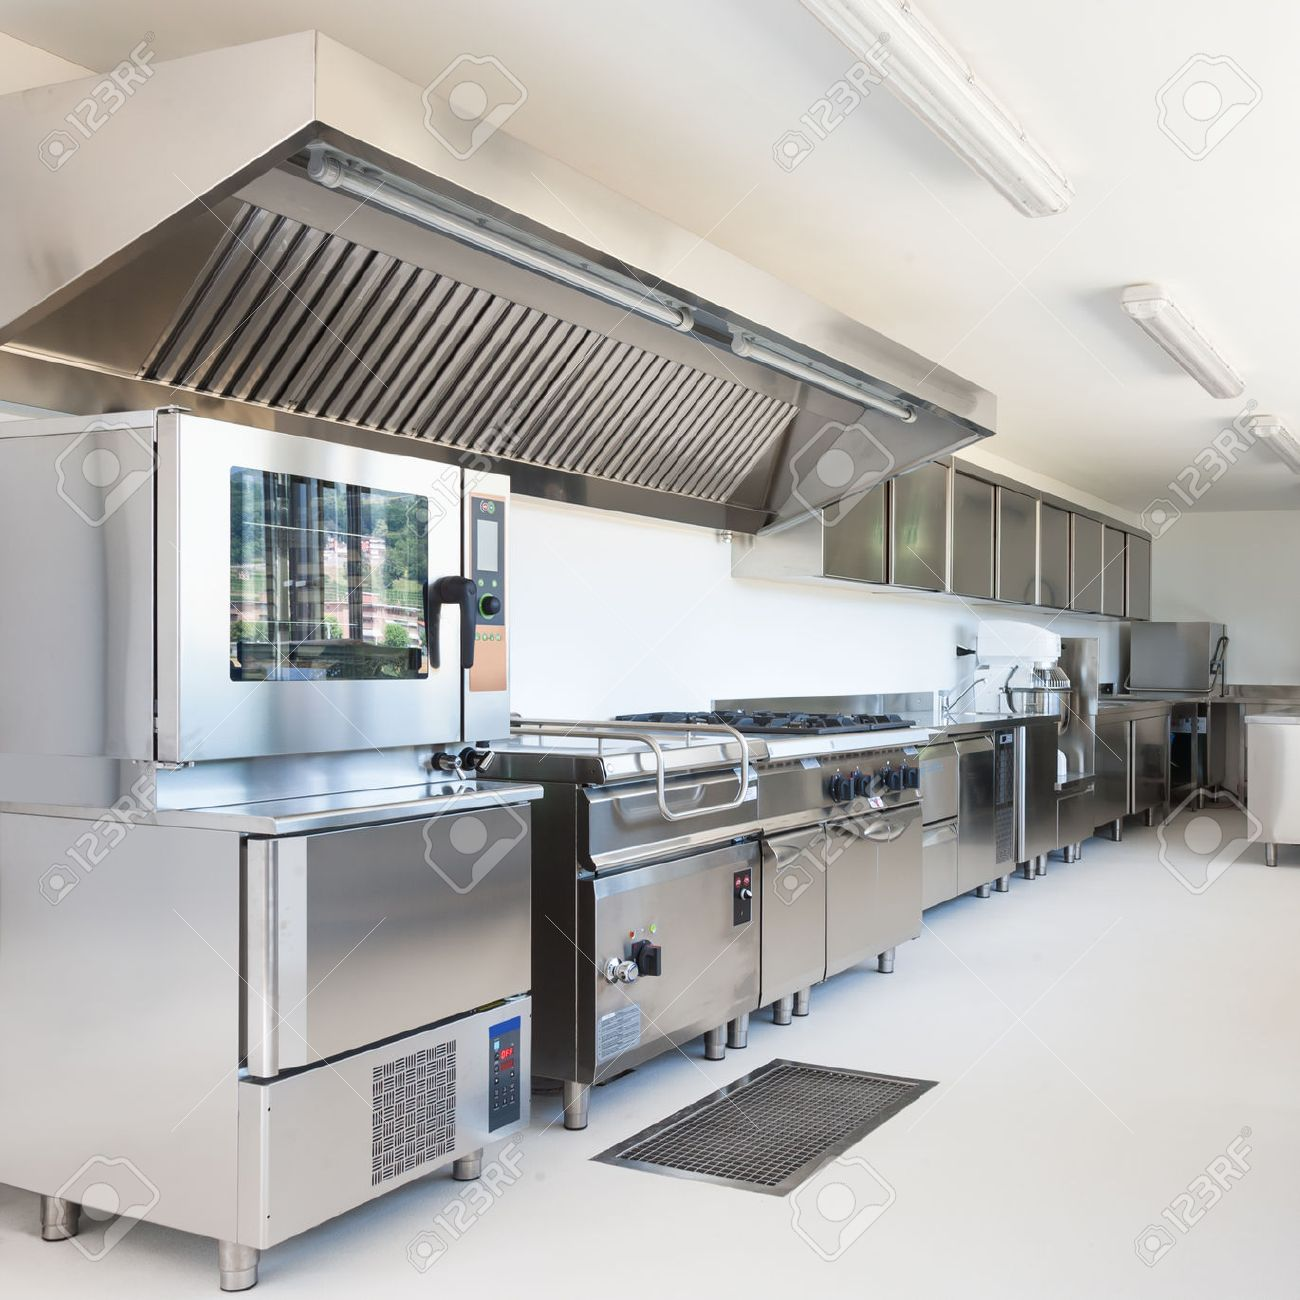 professional kitchen in modern building stock photo picture and